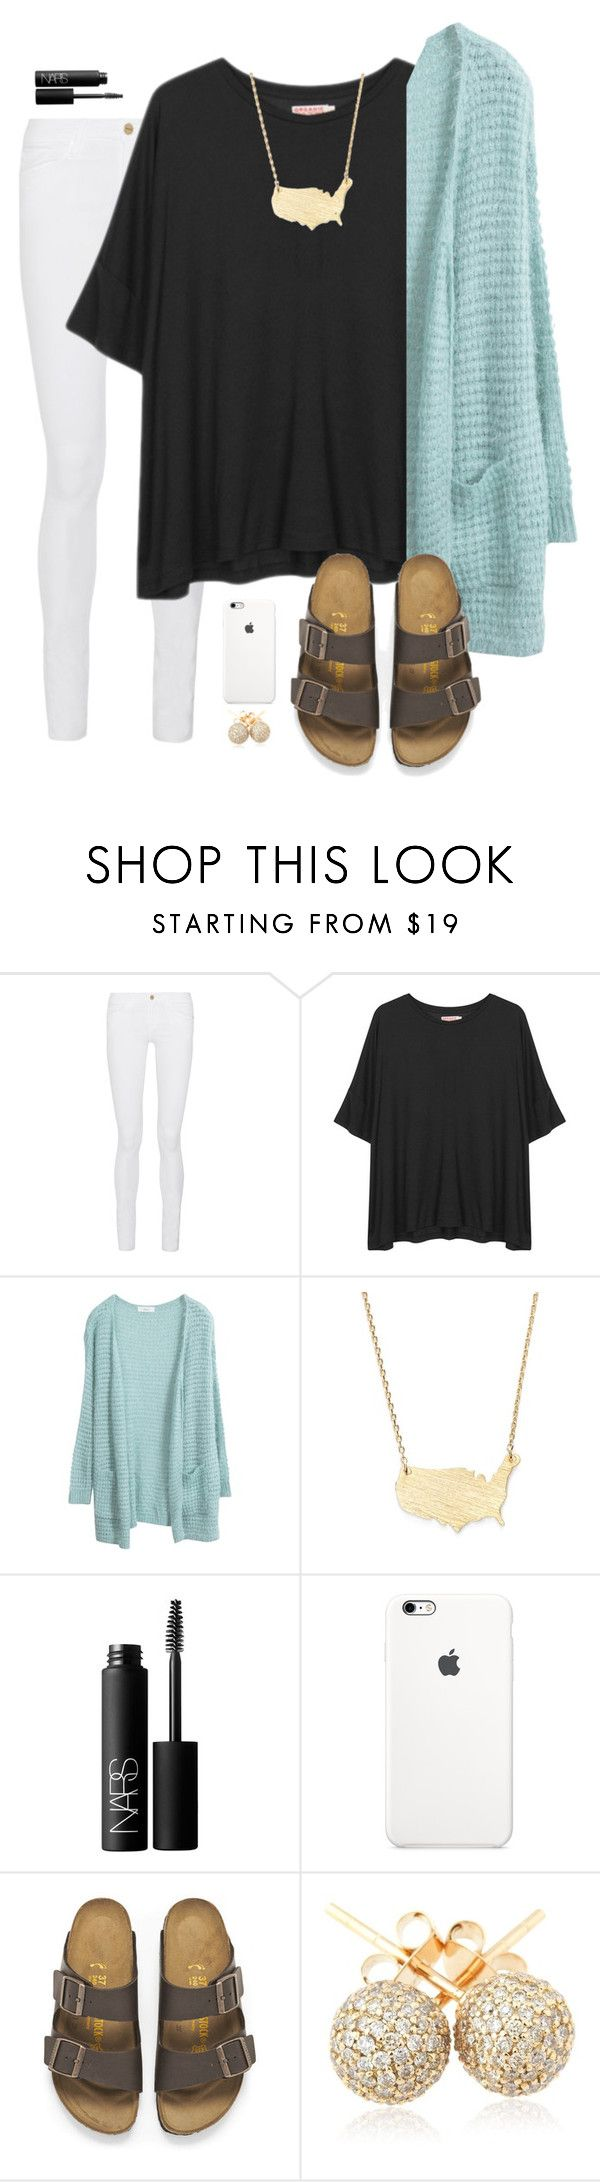 """what did you wear today? possible s/o?"" by madiweeksss ❤ liked on Polyvore featuring Frame Denim, Organic by John Patrick, Moon and Lola, NARS Cosmetics, Birkenstock and Loushelou"